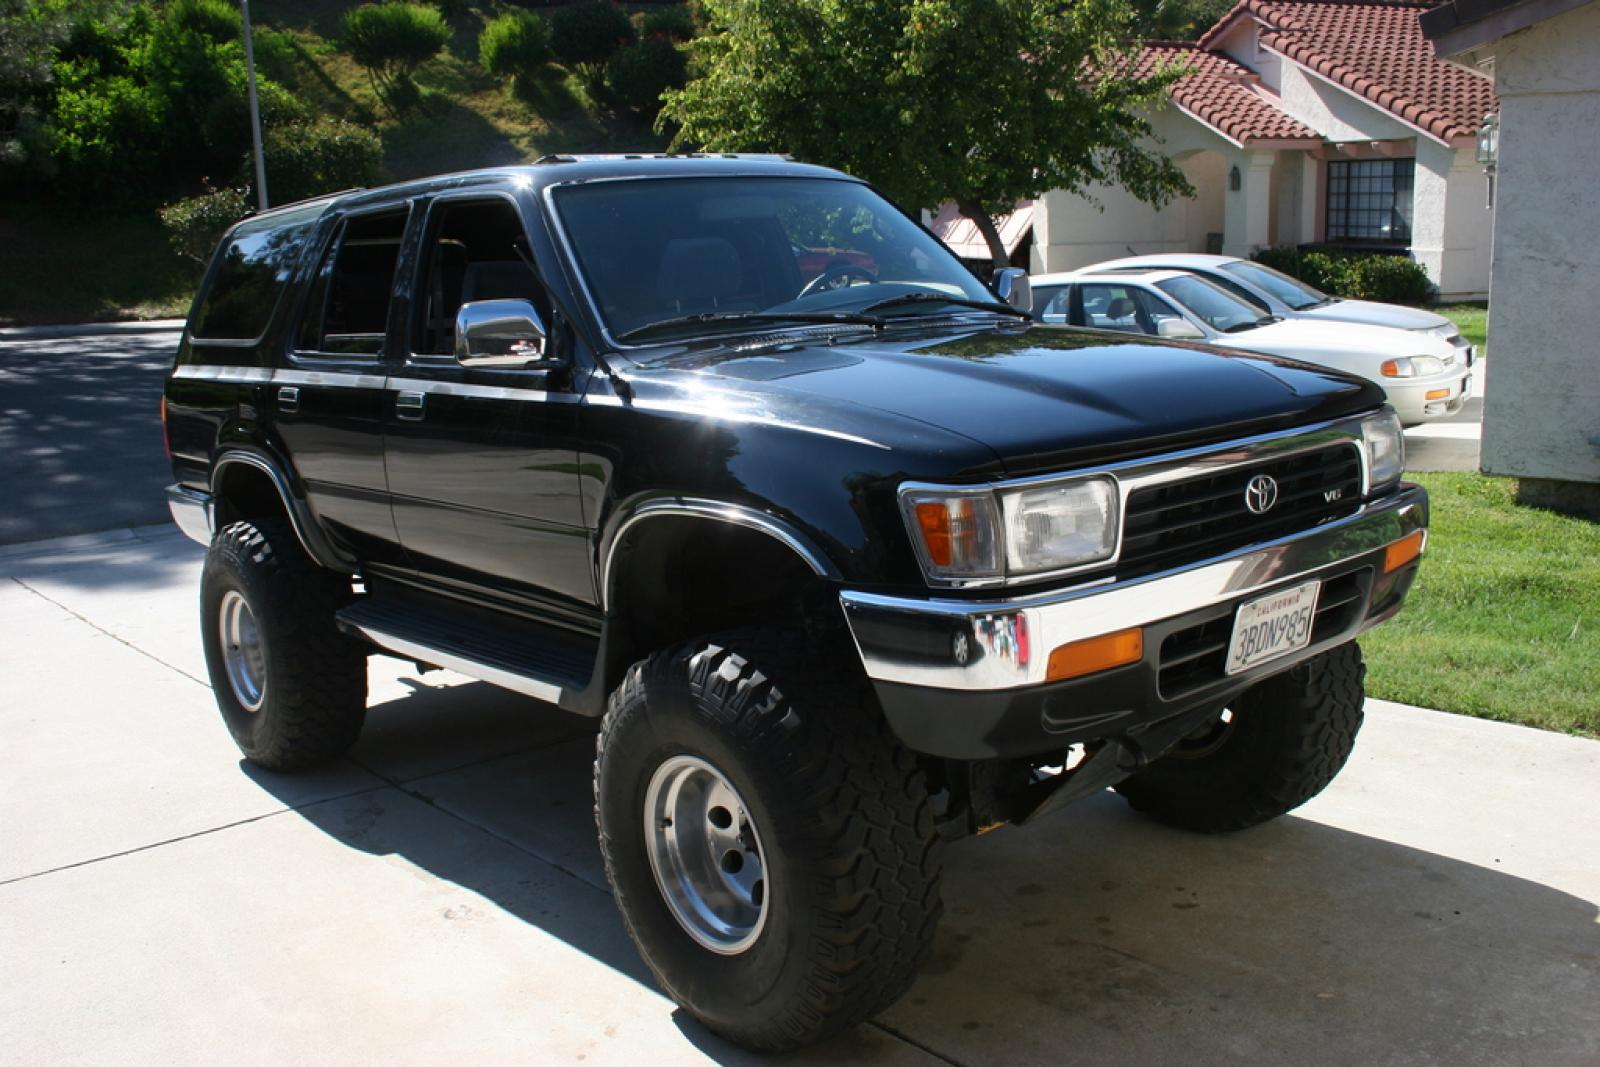 1992 toyota 4runner information and photos zombiedrive rh zombdrive com 1992 toyota 4runner owners manual 1991 toyota 4runner manual transmission